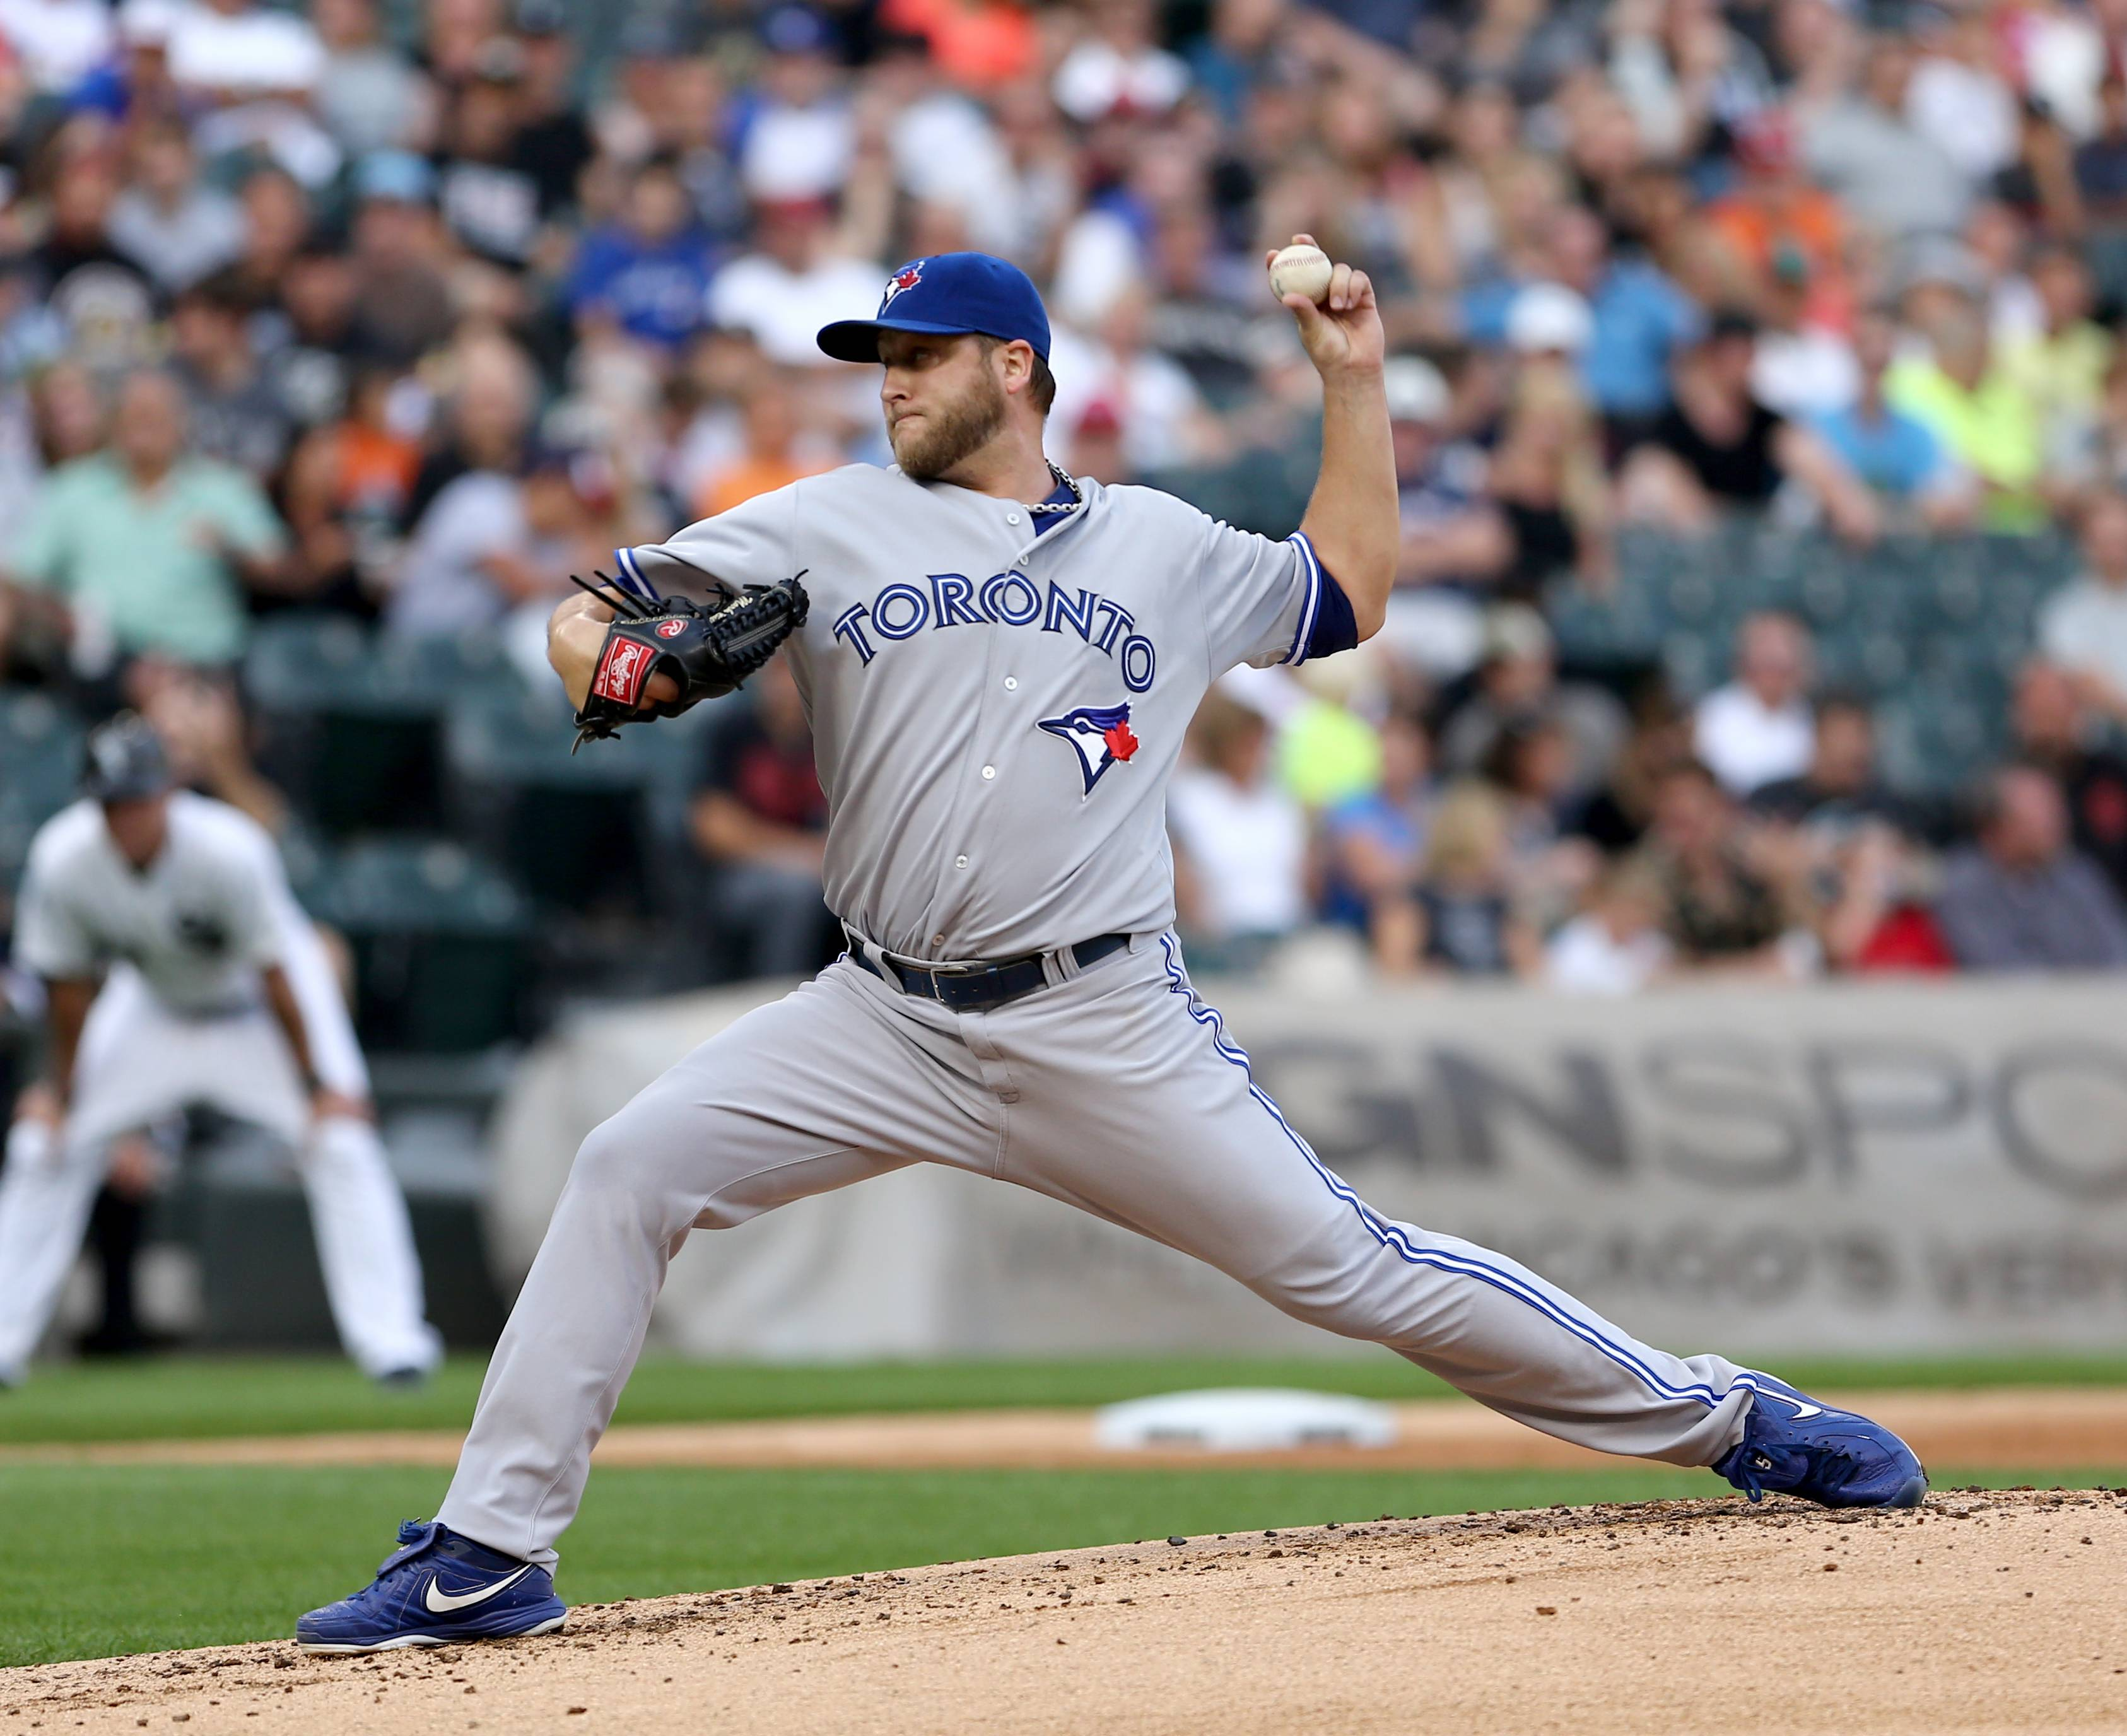 Toronto Blue Jays starter Mark Buehrle pitches to the Chicago White Sox in the first inning in a baseball game in Chicago on Saturday, Aug. 16, 2014.